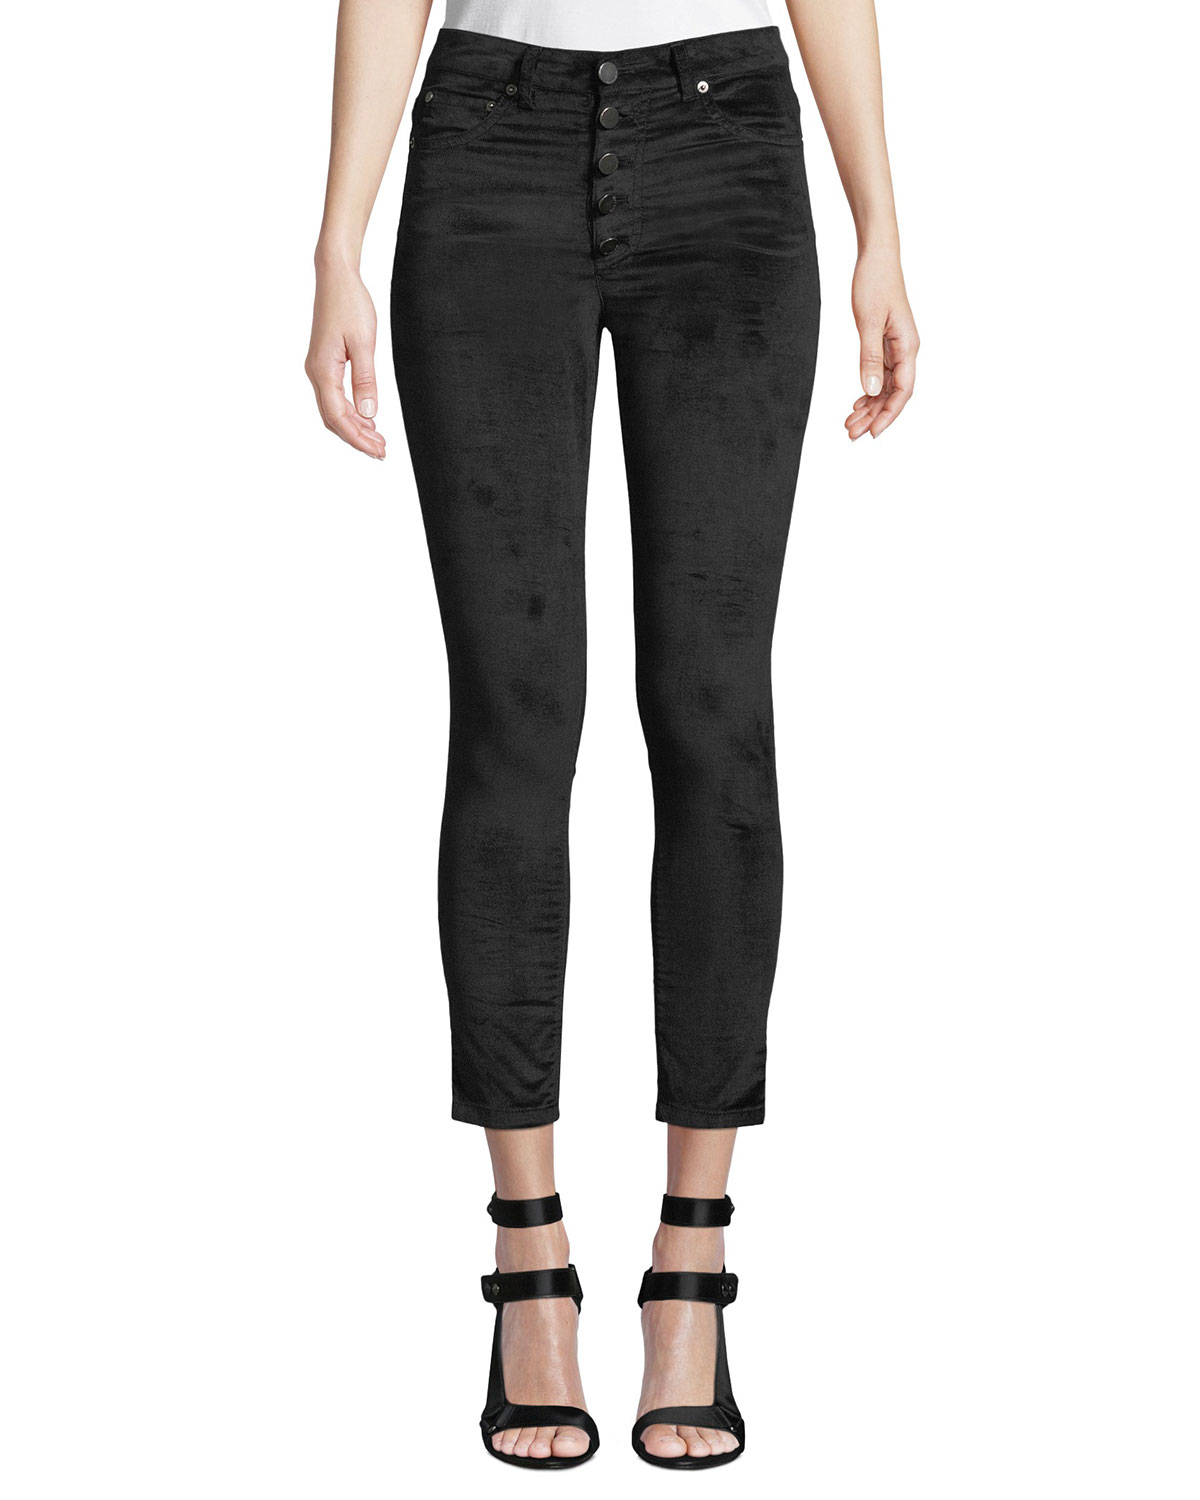 AO.LA BY ALICE+OLIVIA Good High-Rise Button-Fly Velvet Skinny Jeans in Black